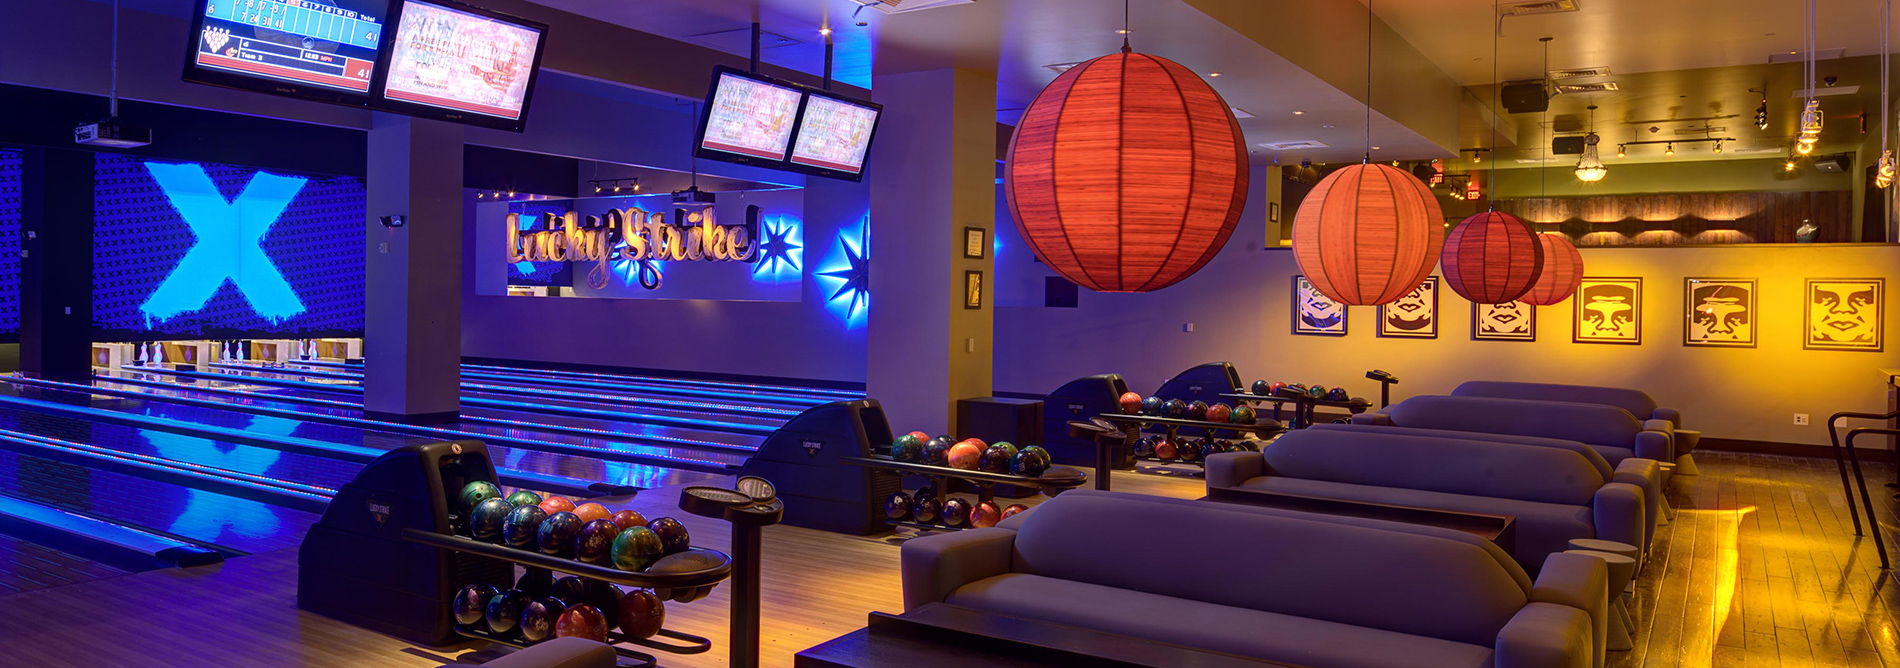 QUBICAAMF-bowling-boutique-Lucky-Strike-San-Francisco-banner.jpg